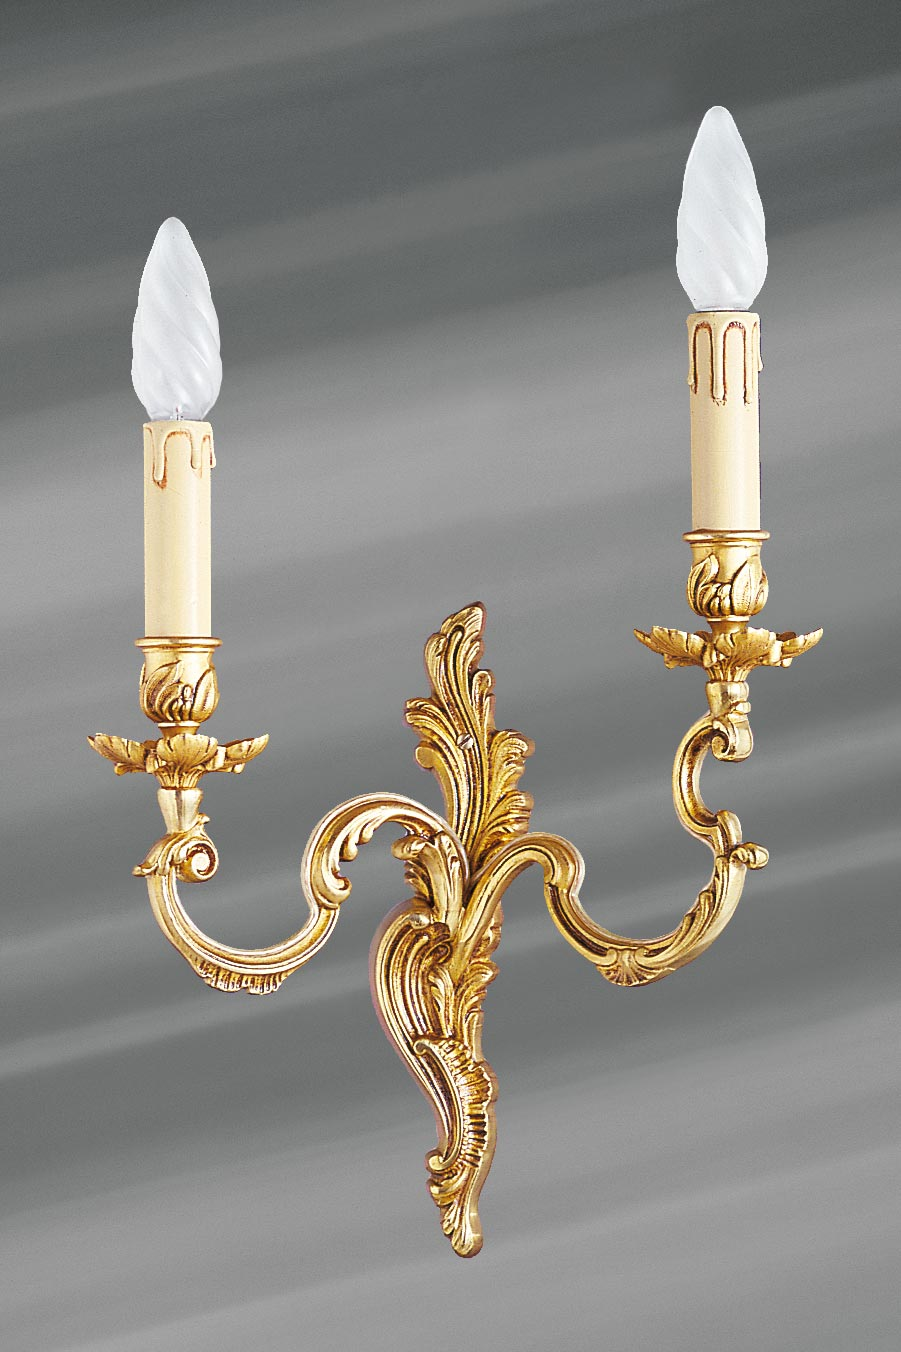 Louis Xv Old Gold Wall Lsconce Two Candlesticks Lucien Gau Massive Bronze Lightings Made In France Applique Murale En Bronze Massif De Style Louis Xv Munie De Deux Bougeoirs Ref 12020255